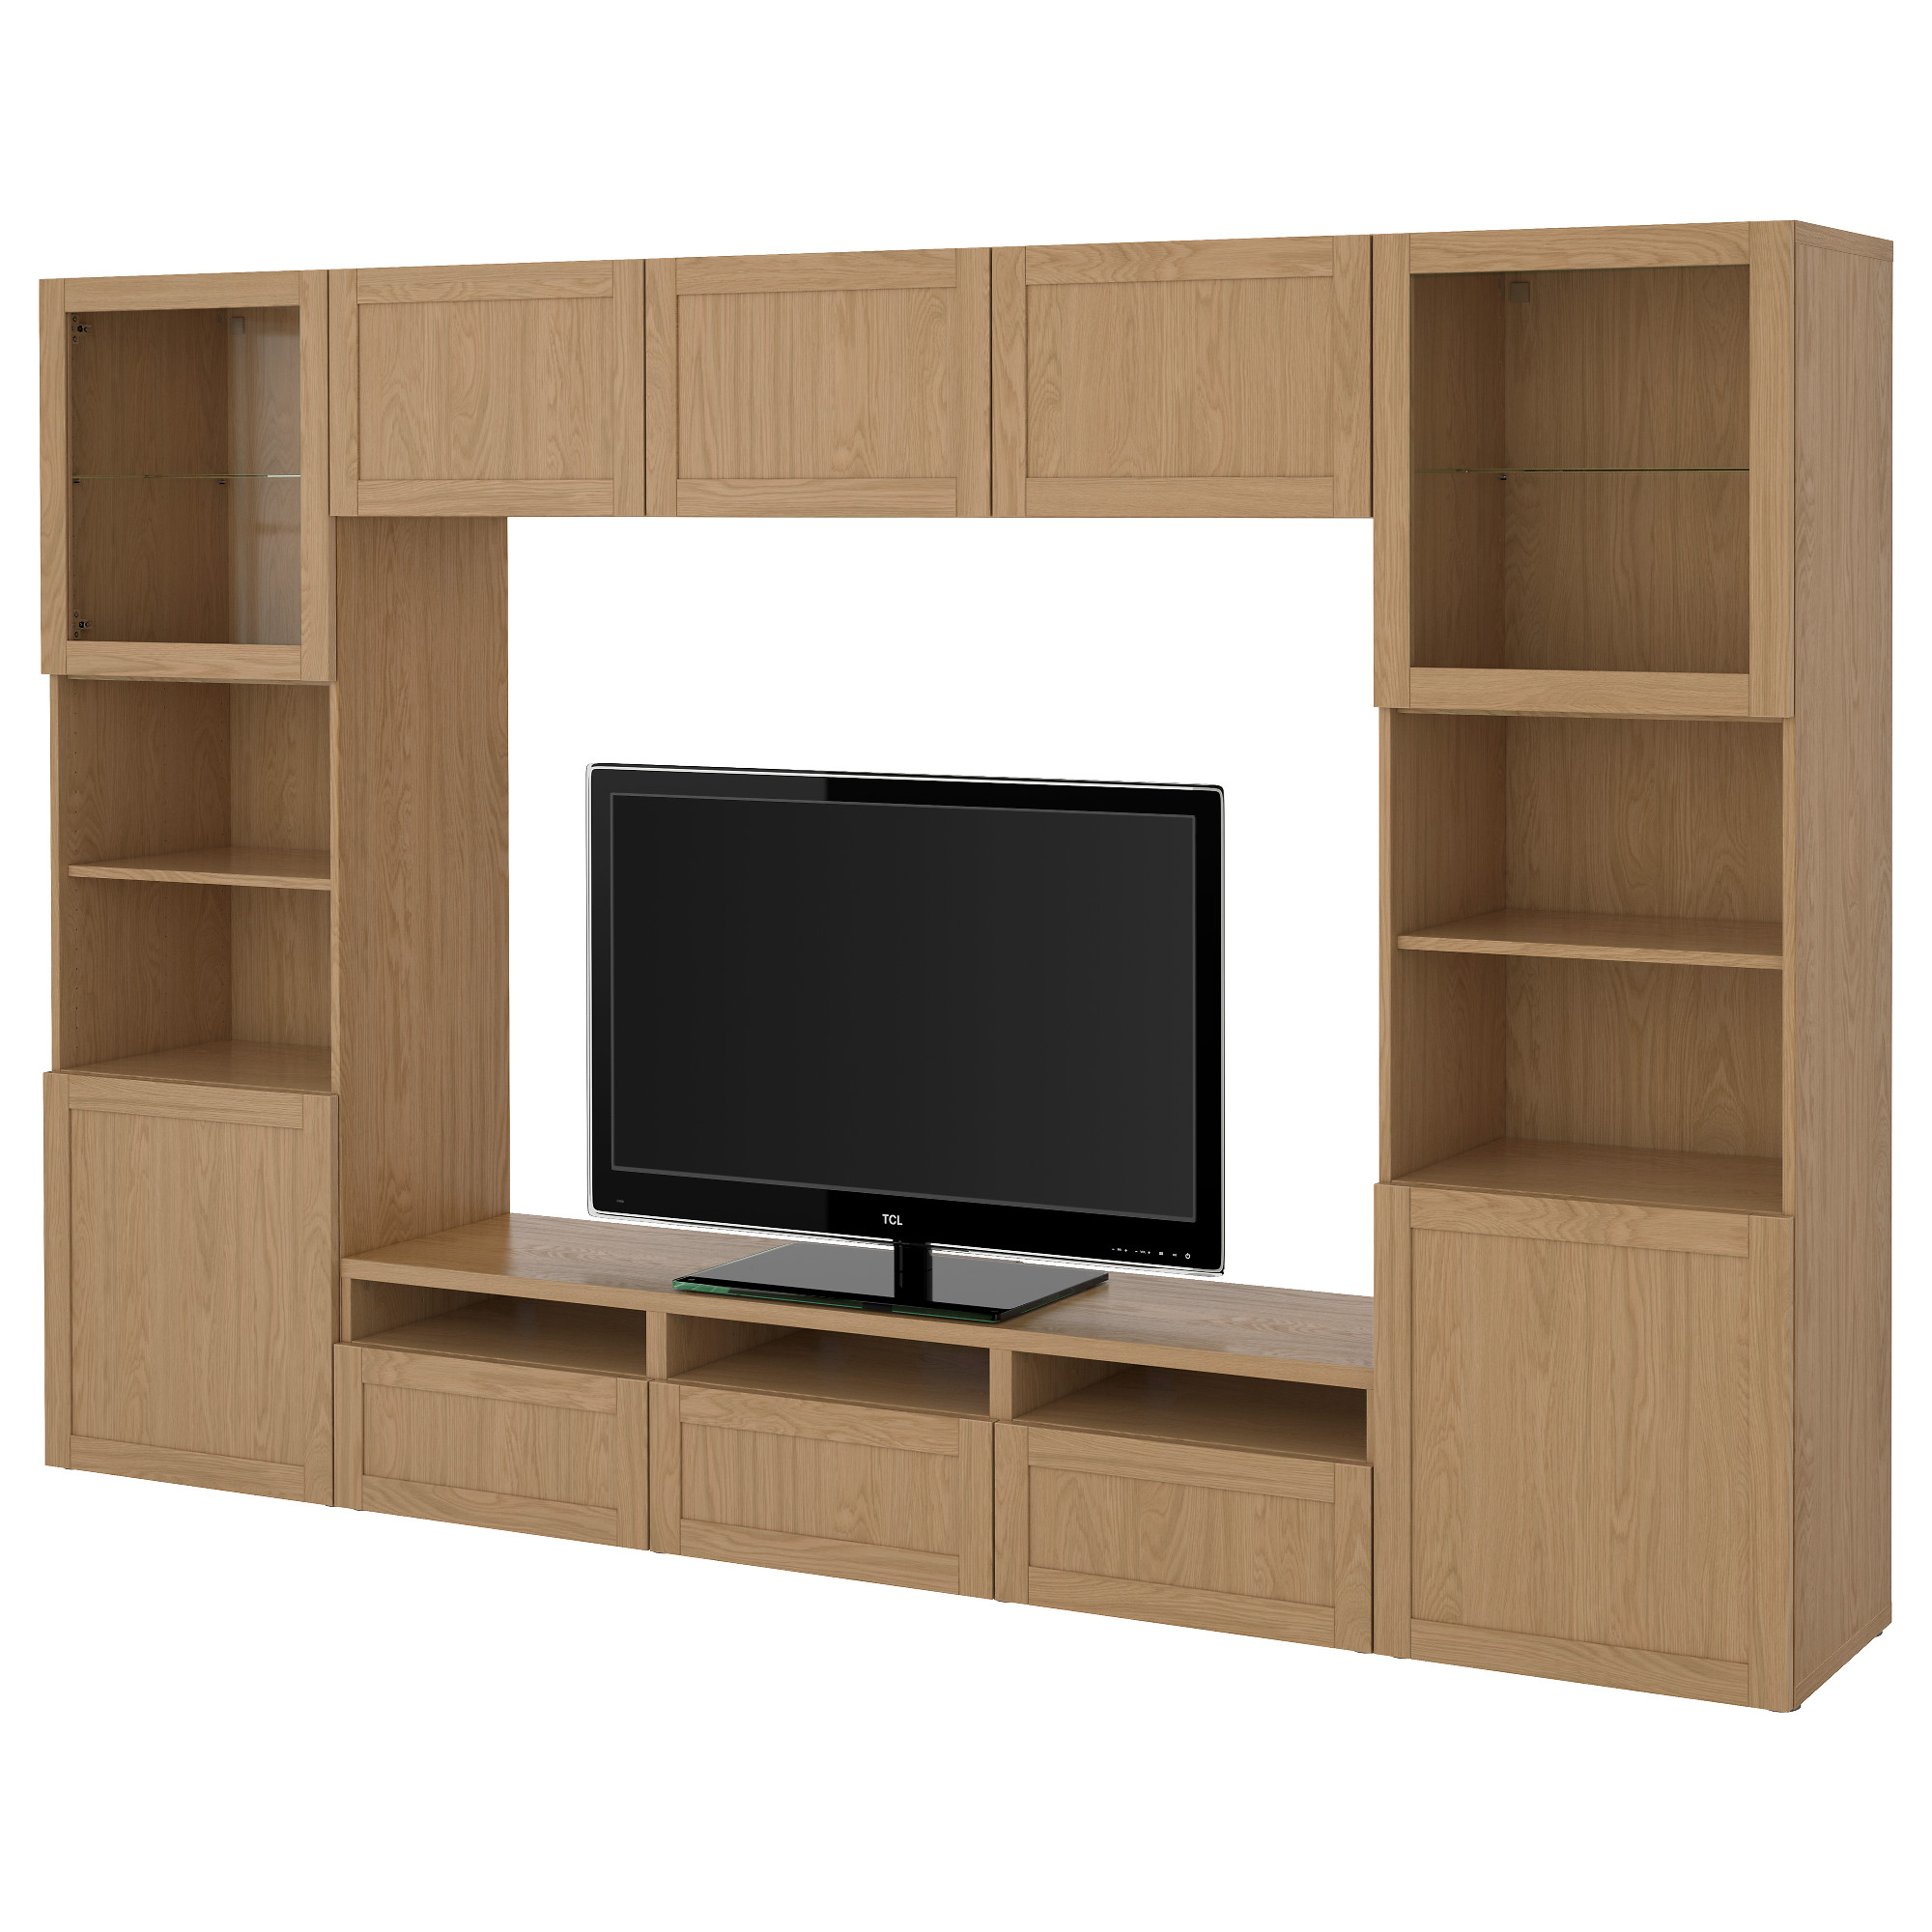 Tv wall clipart clipart library stock Pictures Of Tv Wall Units. purple wall design tv room ... clipart library stock